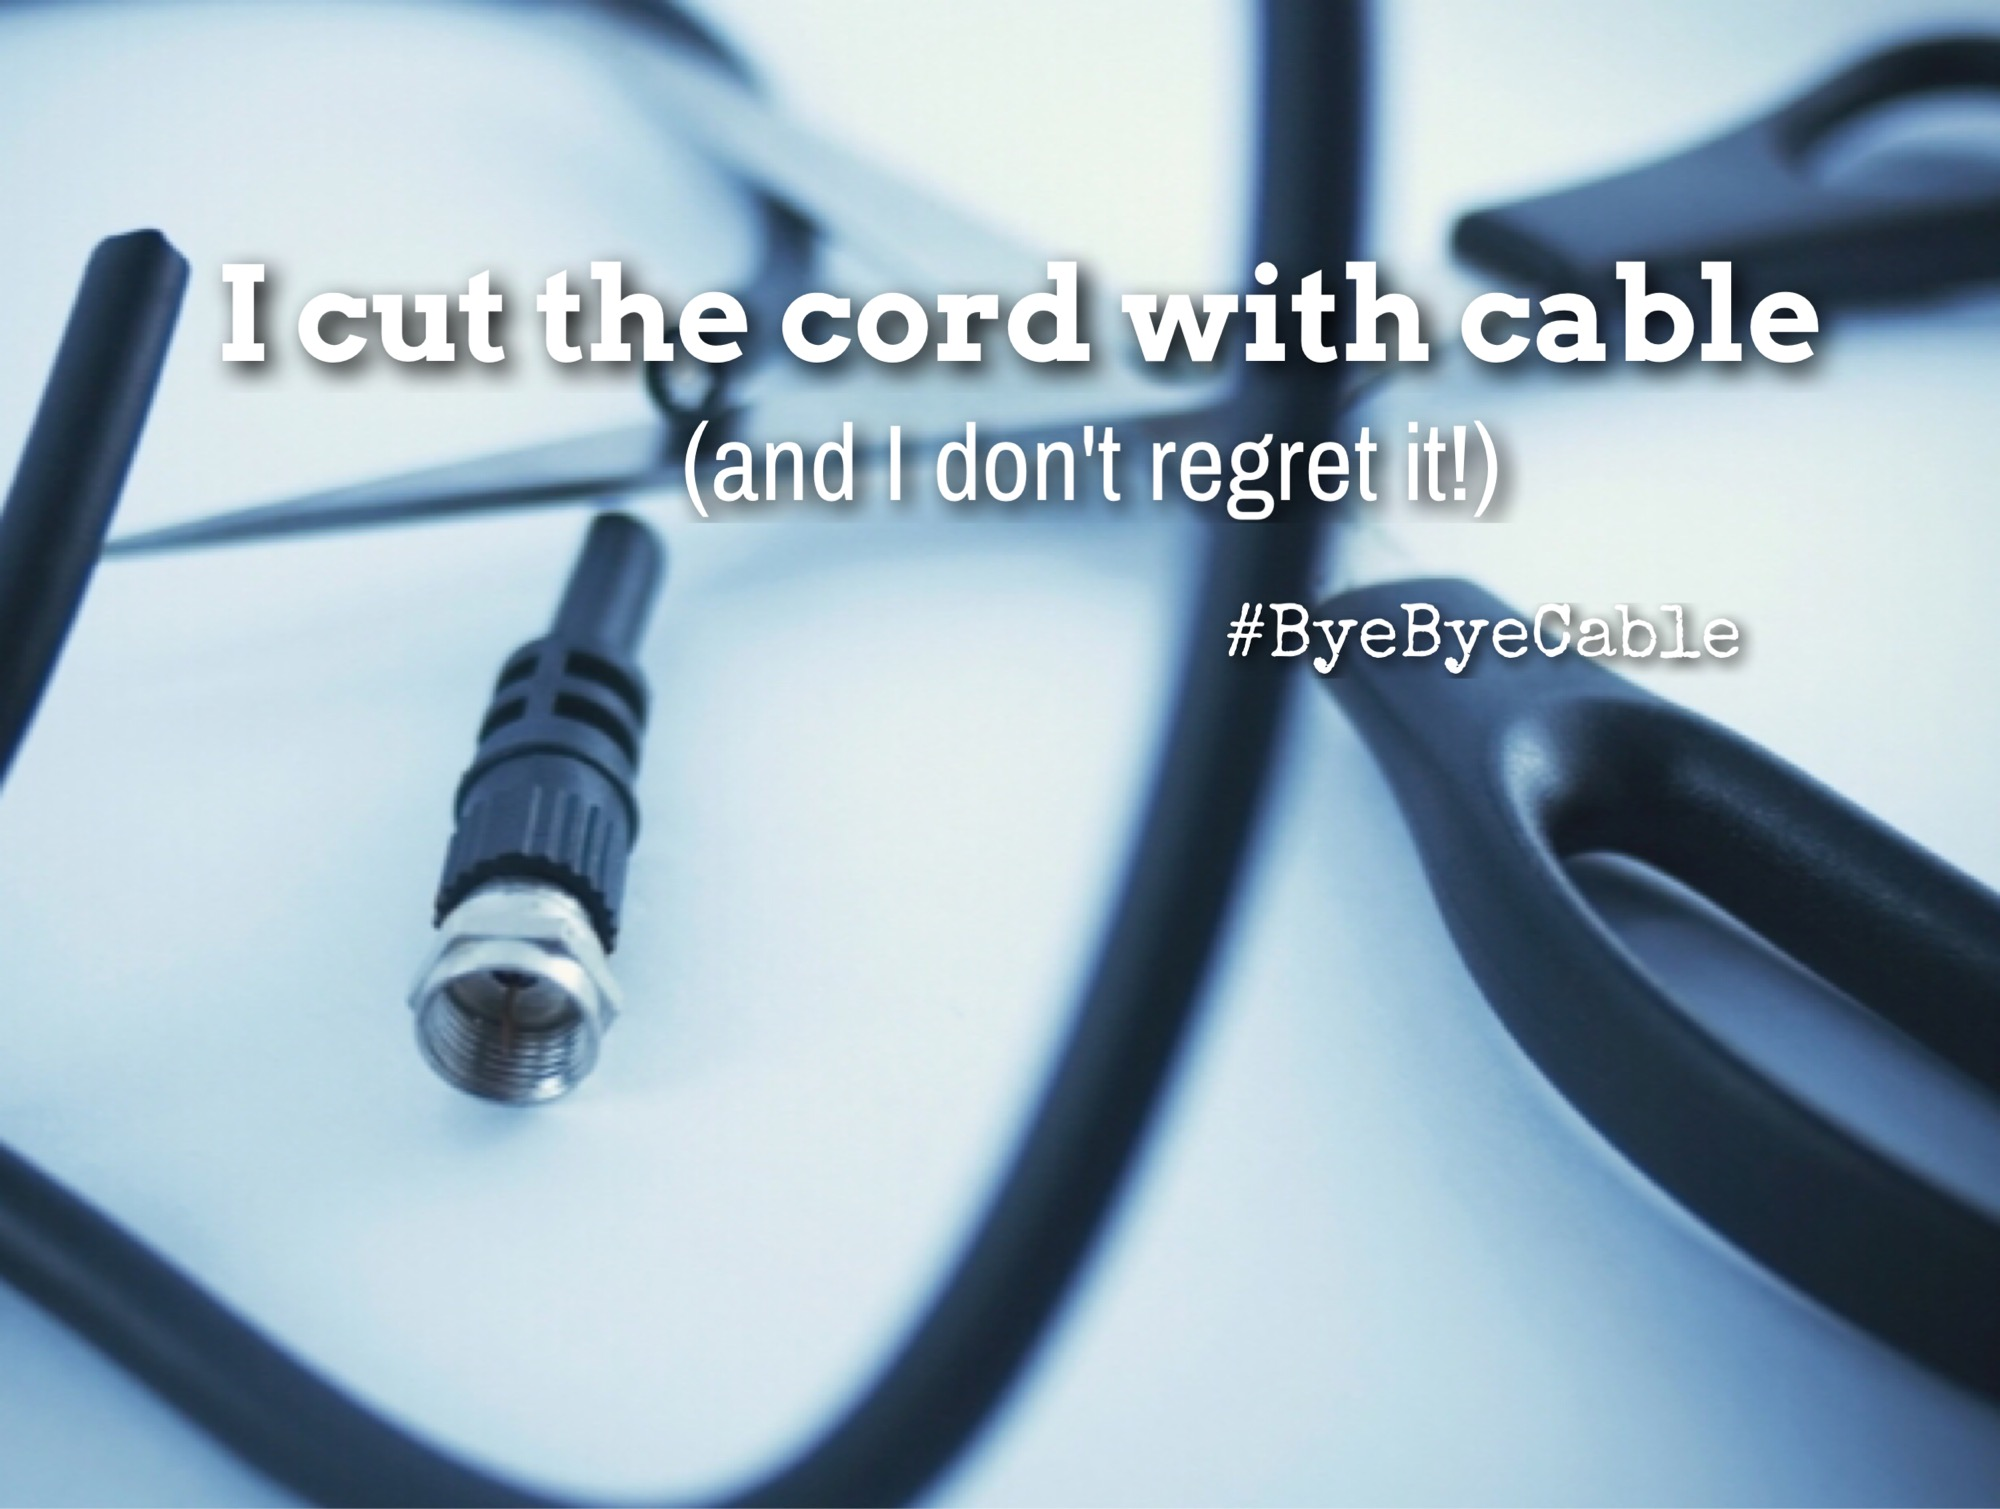 I Cut The Cord With Cable (And I don't regret it) !